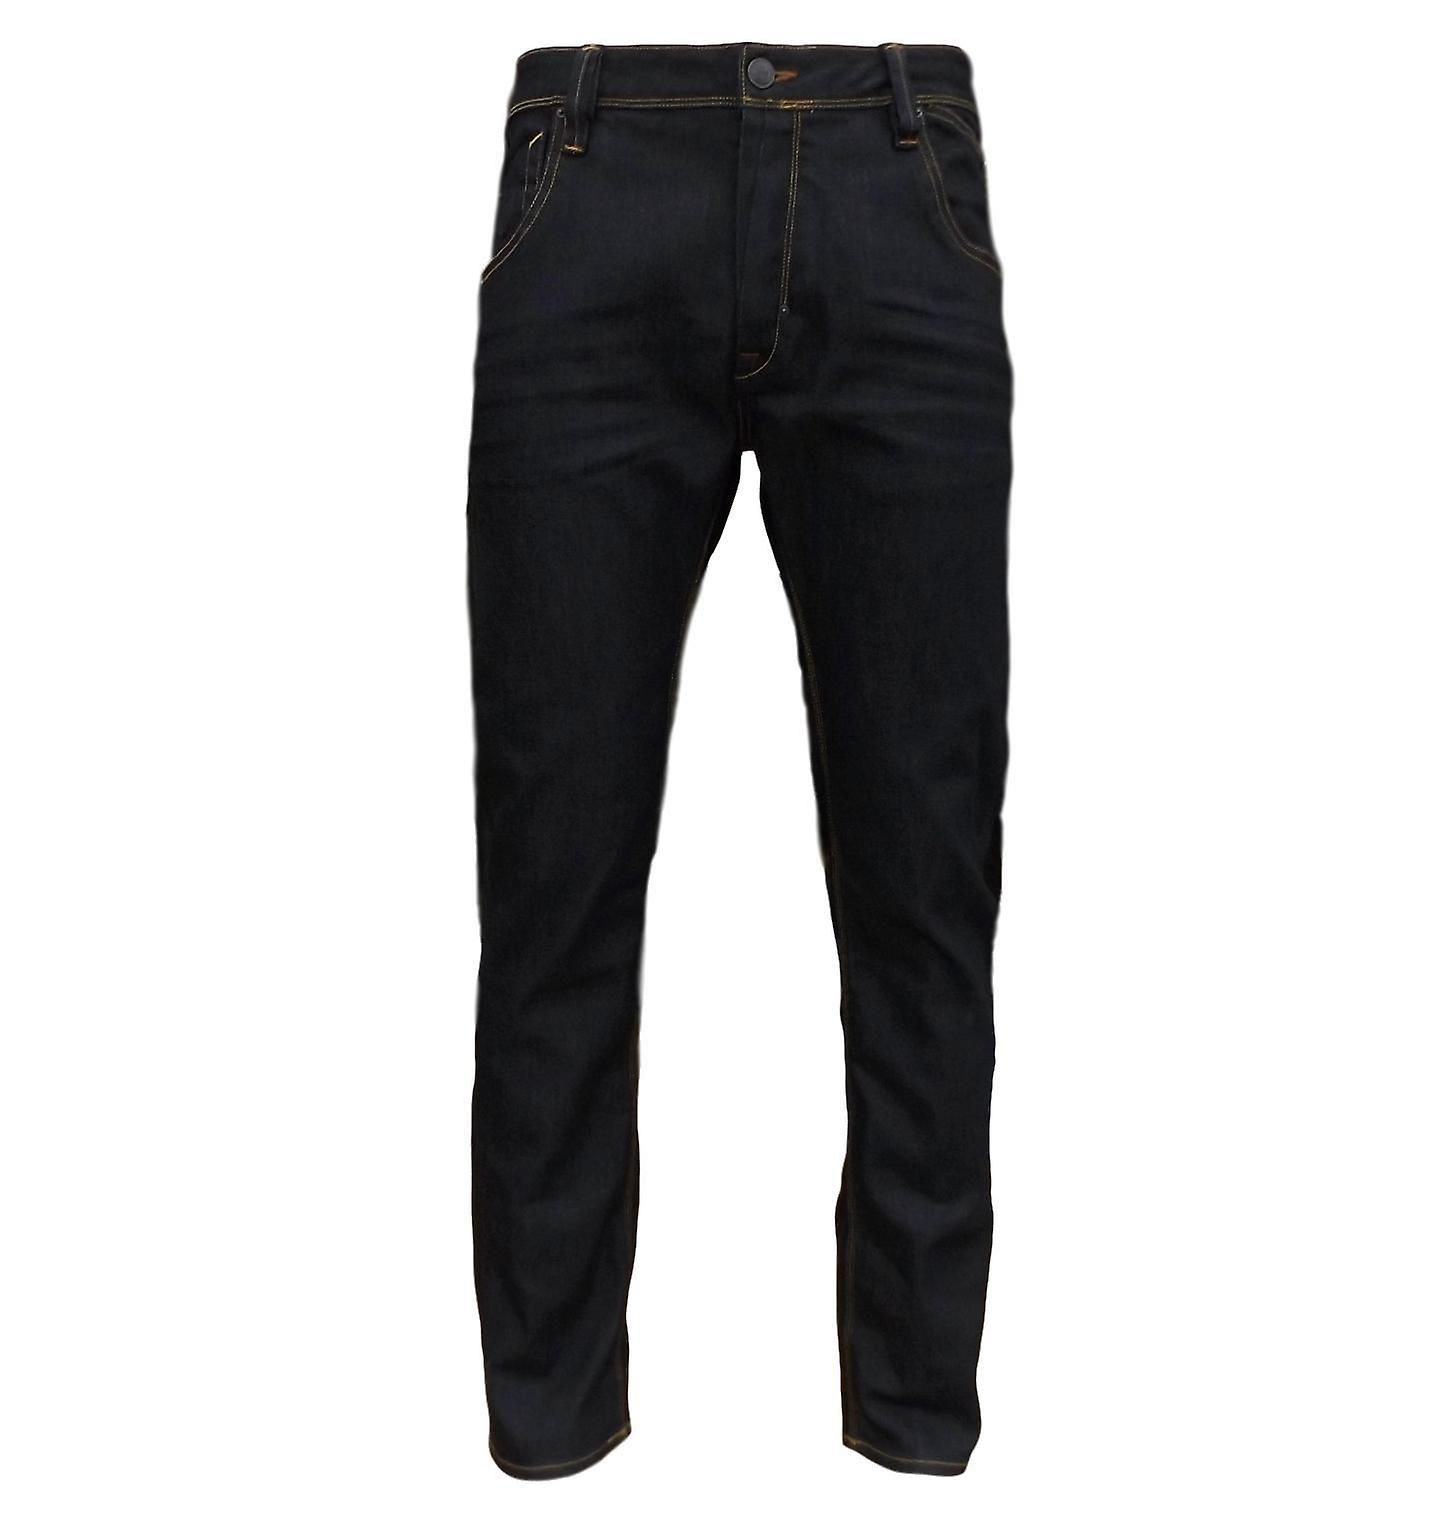 883 Police Men's Brade Rugby Slim Fit Straight Leg Button Fly Denim Jeans